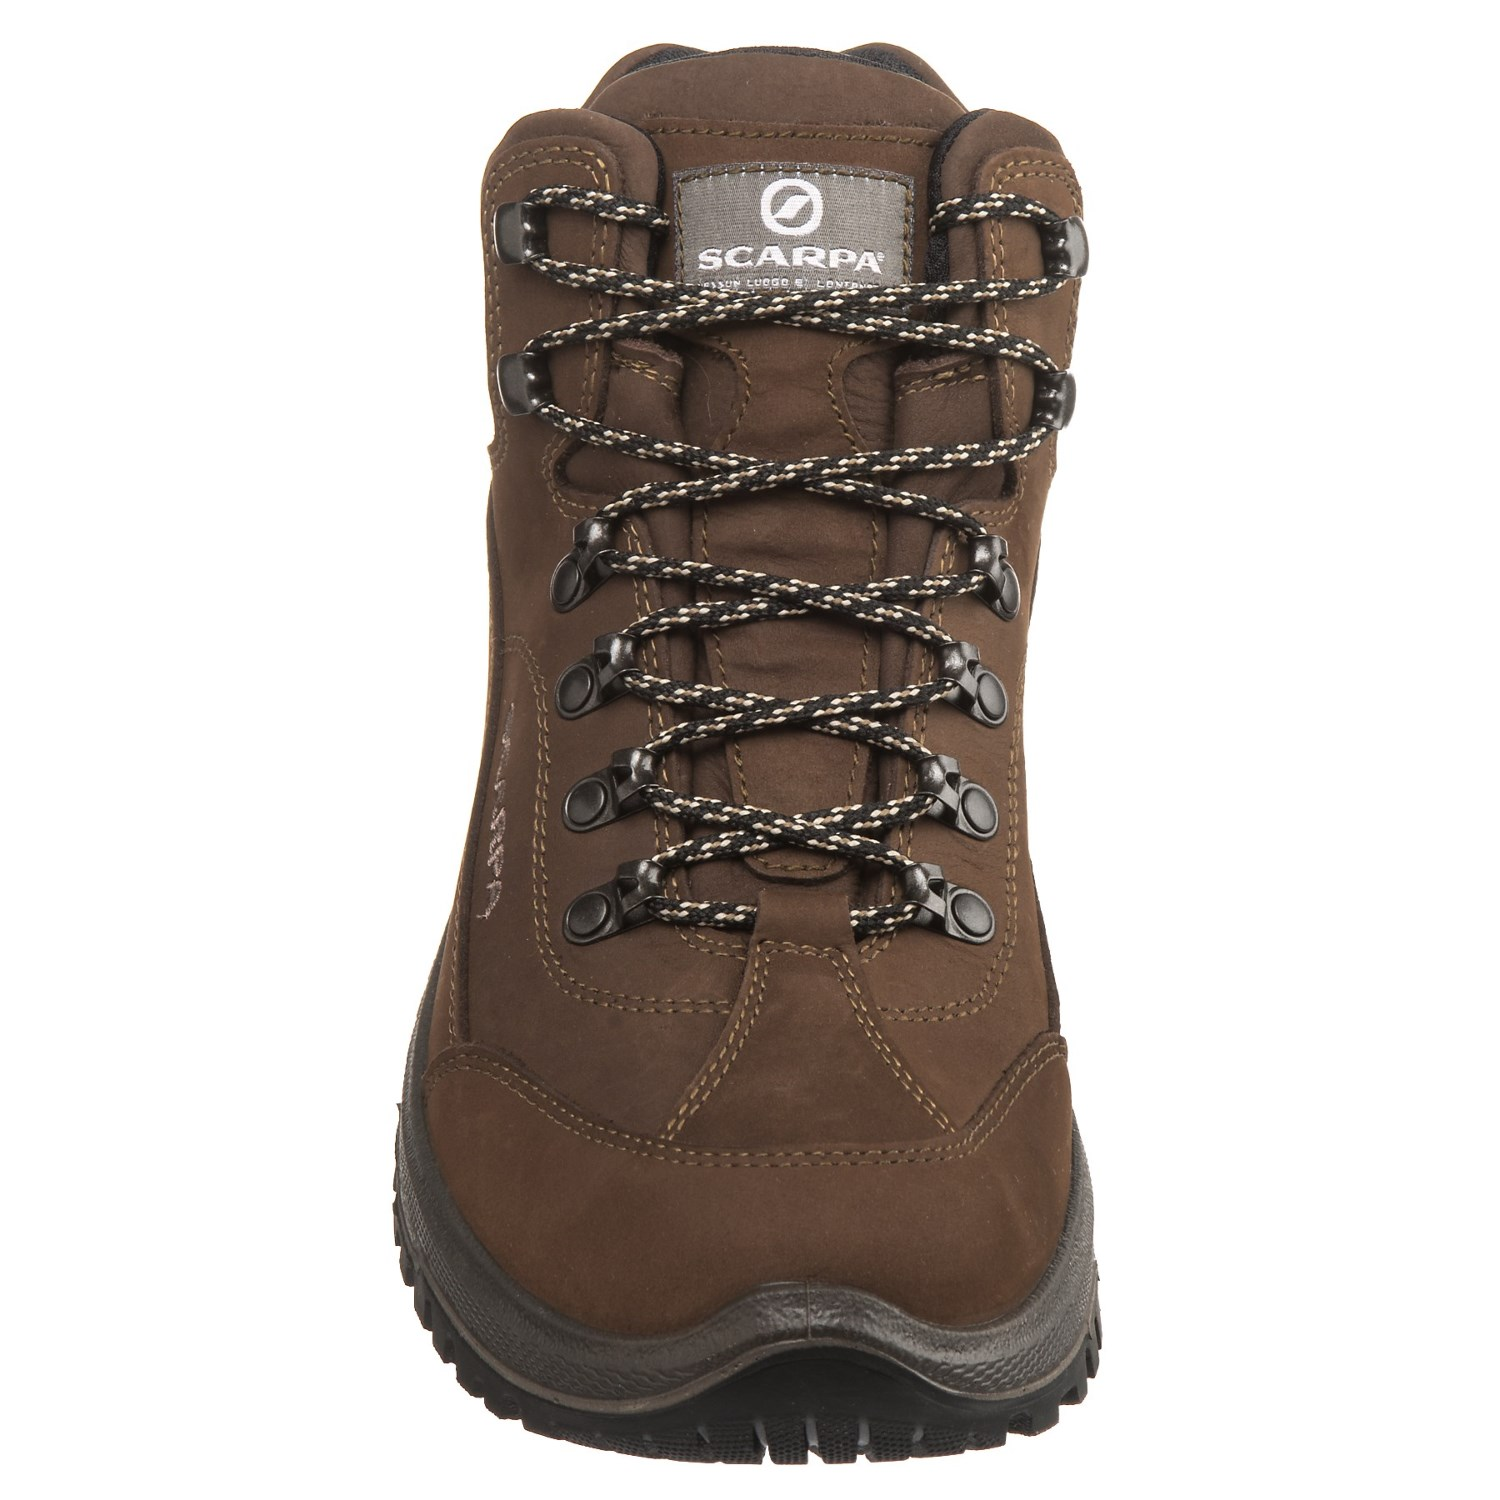 a44e05b8cfd Scarpa Cyrus Mid Gore-Tex® Hiking Boots - Waterproof (For Men)